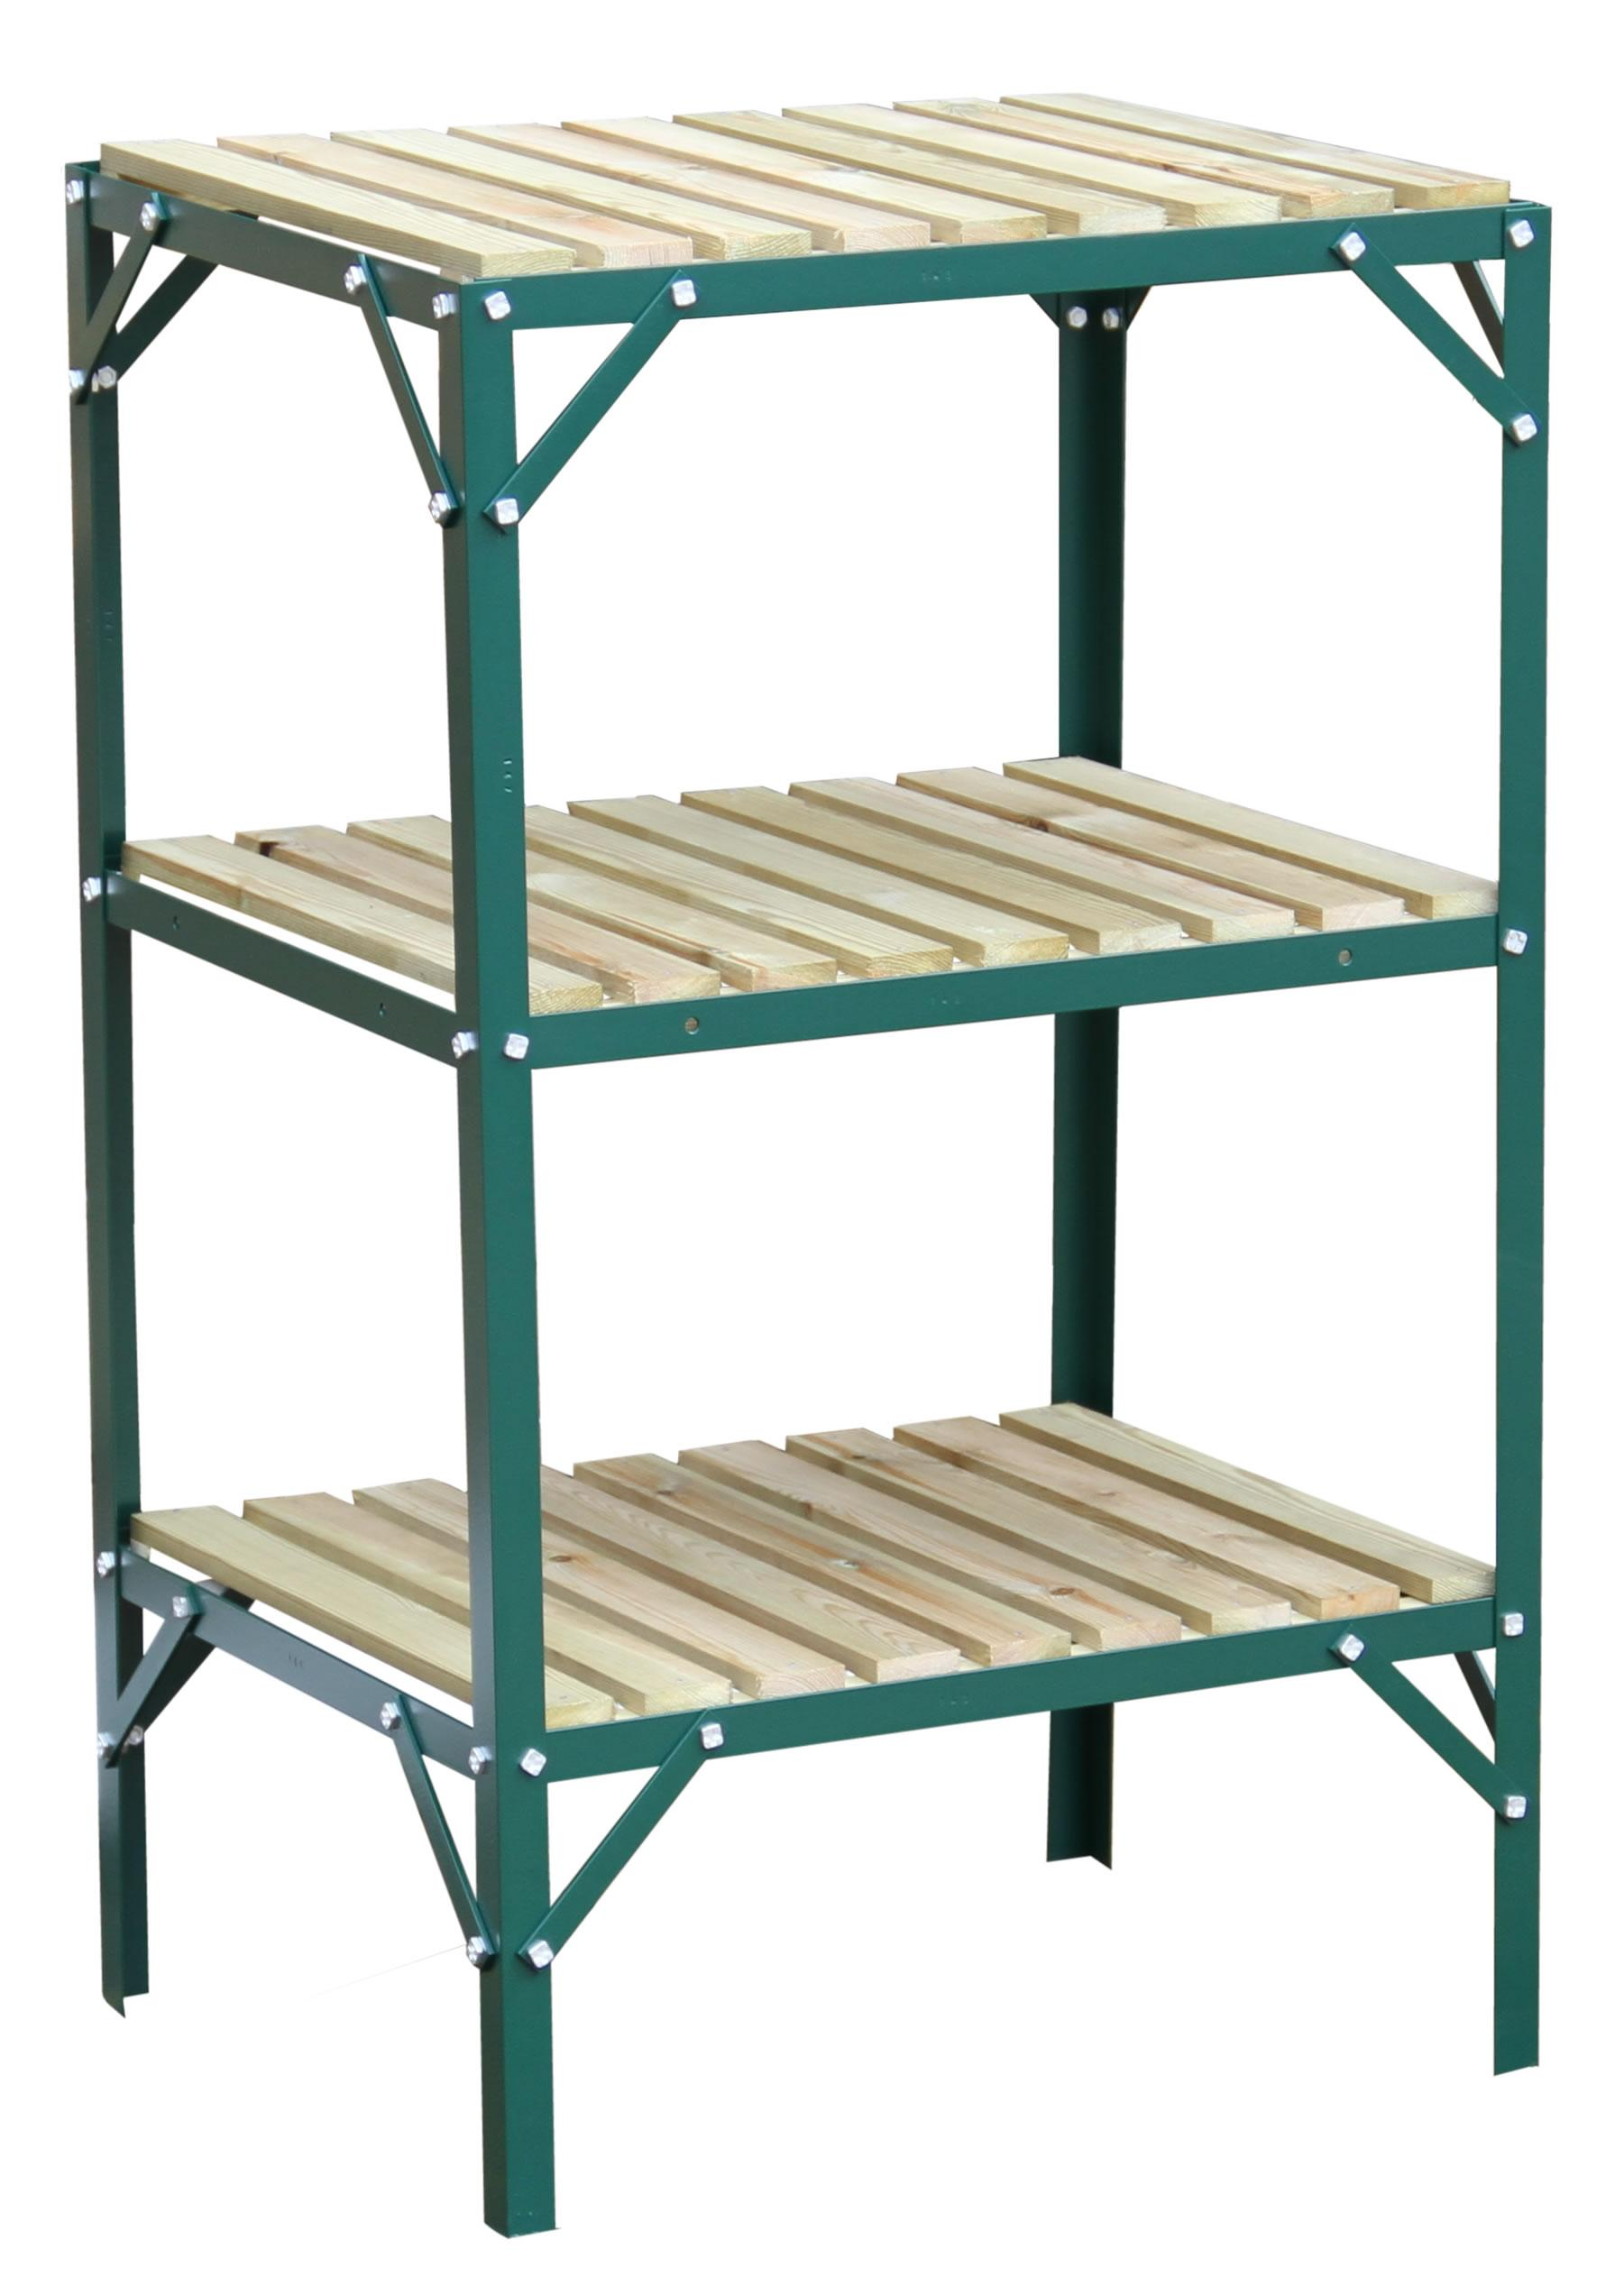 Greenhouse Staging Bench Wooden Three Tier 18 Wide X 2ft Long Ebay